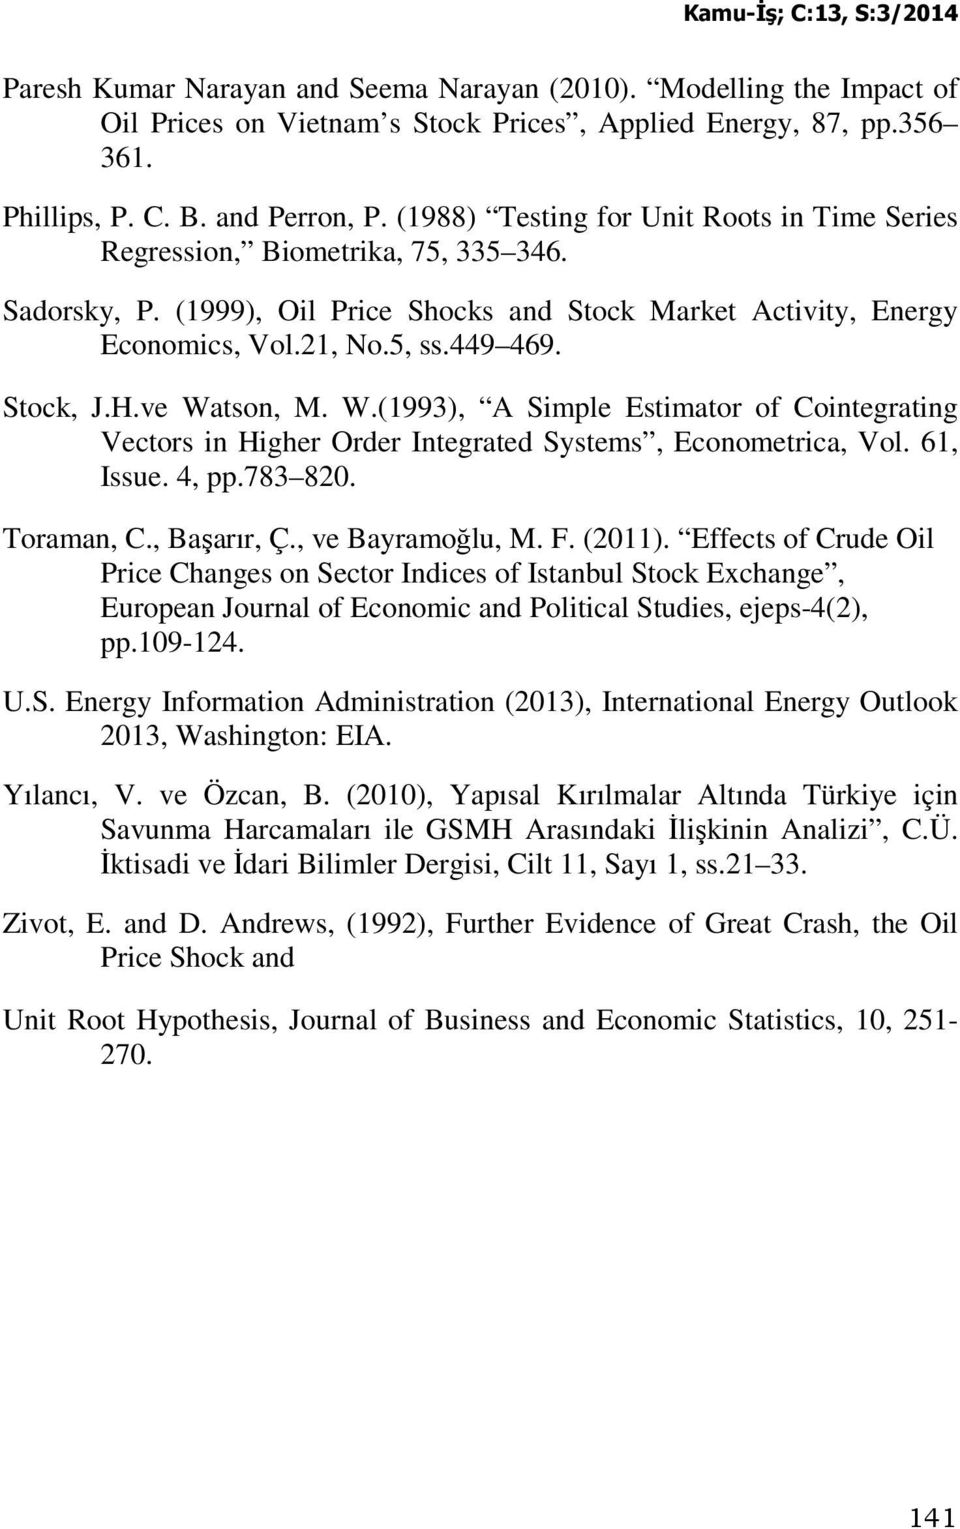 ve Wason, M. W.(993), A Simple Esimaor of Coinegraing Vecors in Higher Order Inegraed Sysems, Economerica, Vol. 6, Issue. 4, pp.783 820. Toraman, C., Başarır, Ç., ve Bayramoğlu, M. F. (20).